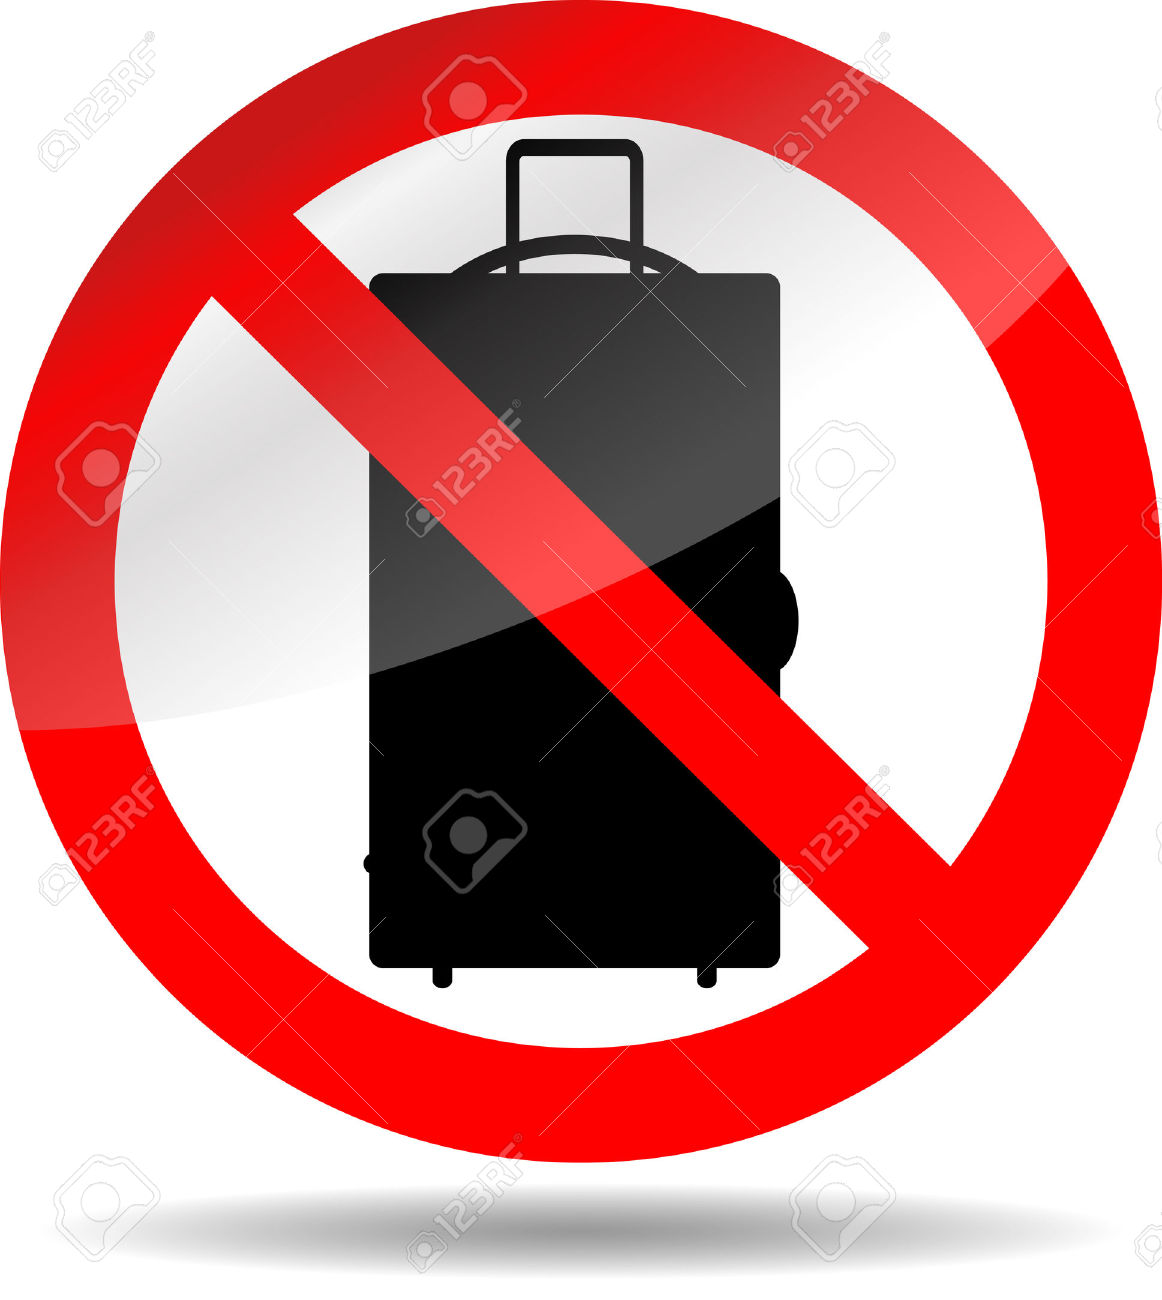 Ban Luggage. Baggage Bag No Or Not, Prohibition Button. Vector.